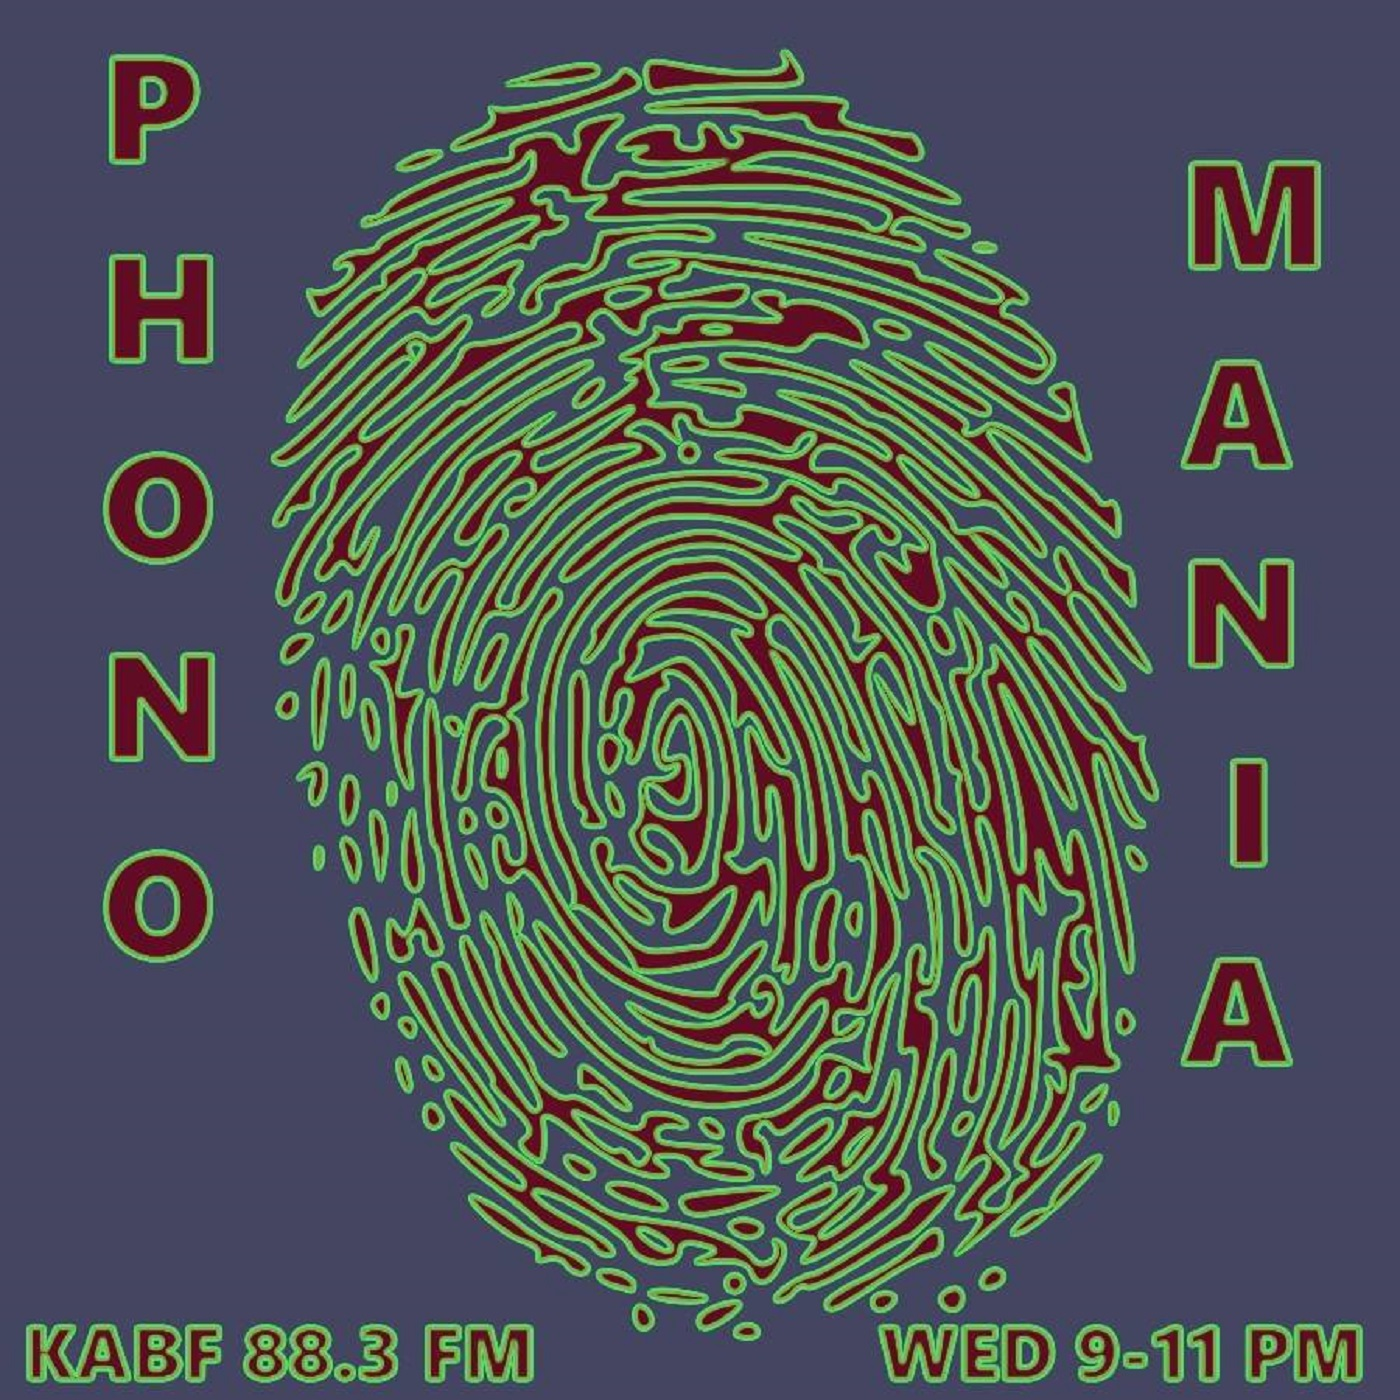 Phonomania on KABF 88.3 FM